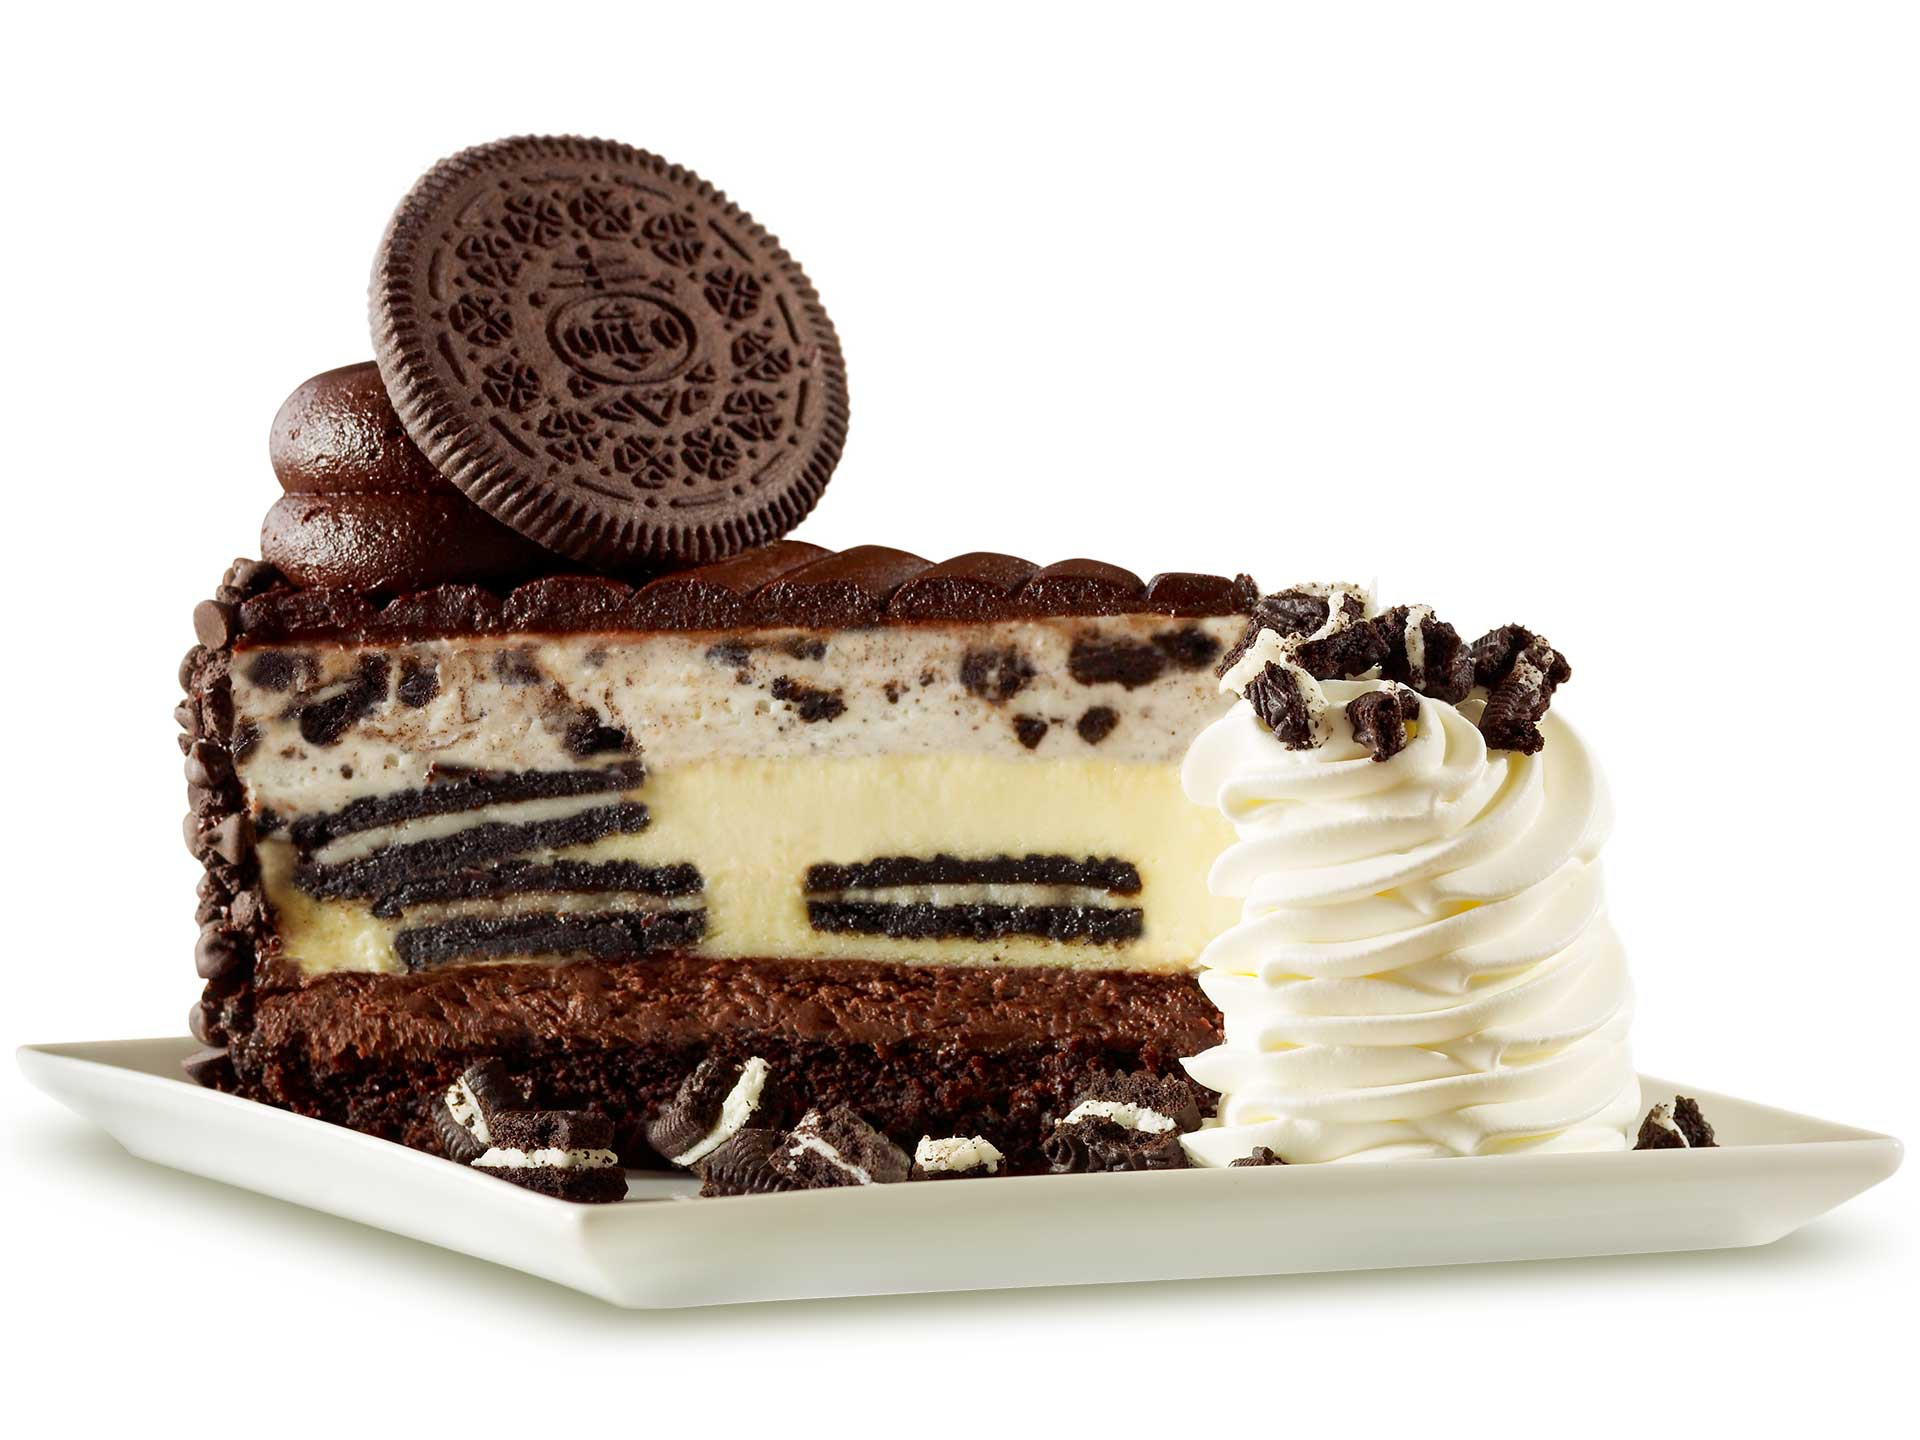 With more than 250 menu items and more than 50 signature cheesecakes and desserts there is truly Something for everyone at The Cheesecake Factory